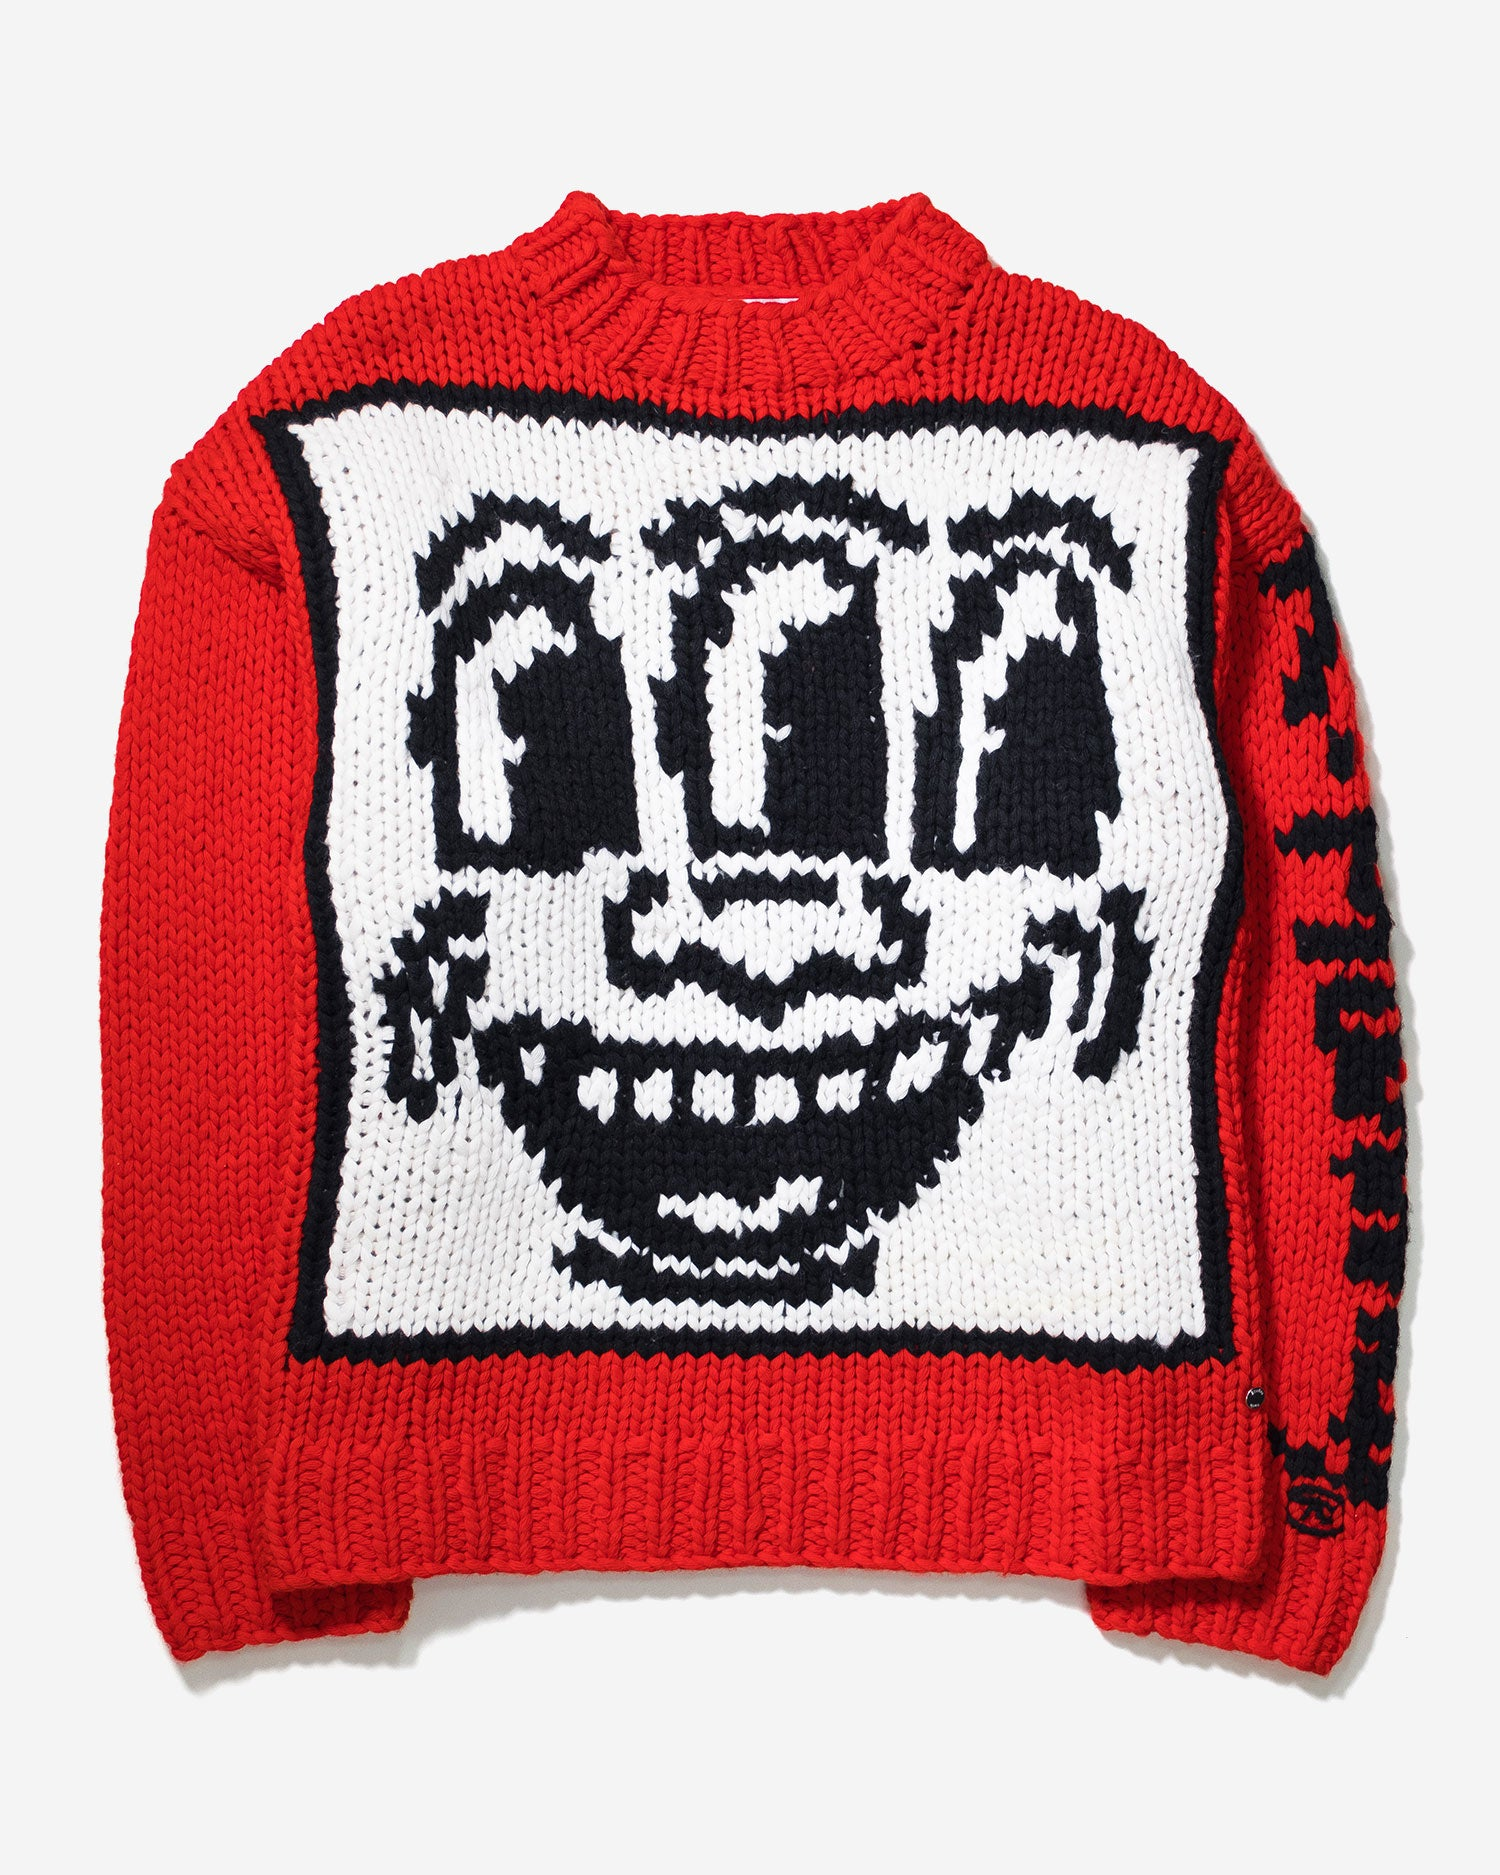 Études x Keith Haring Andy Knitted Sweater in Red Wool